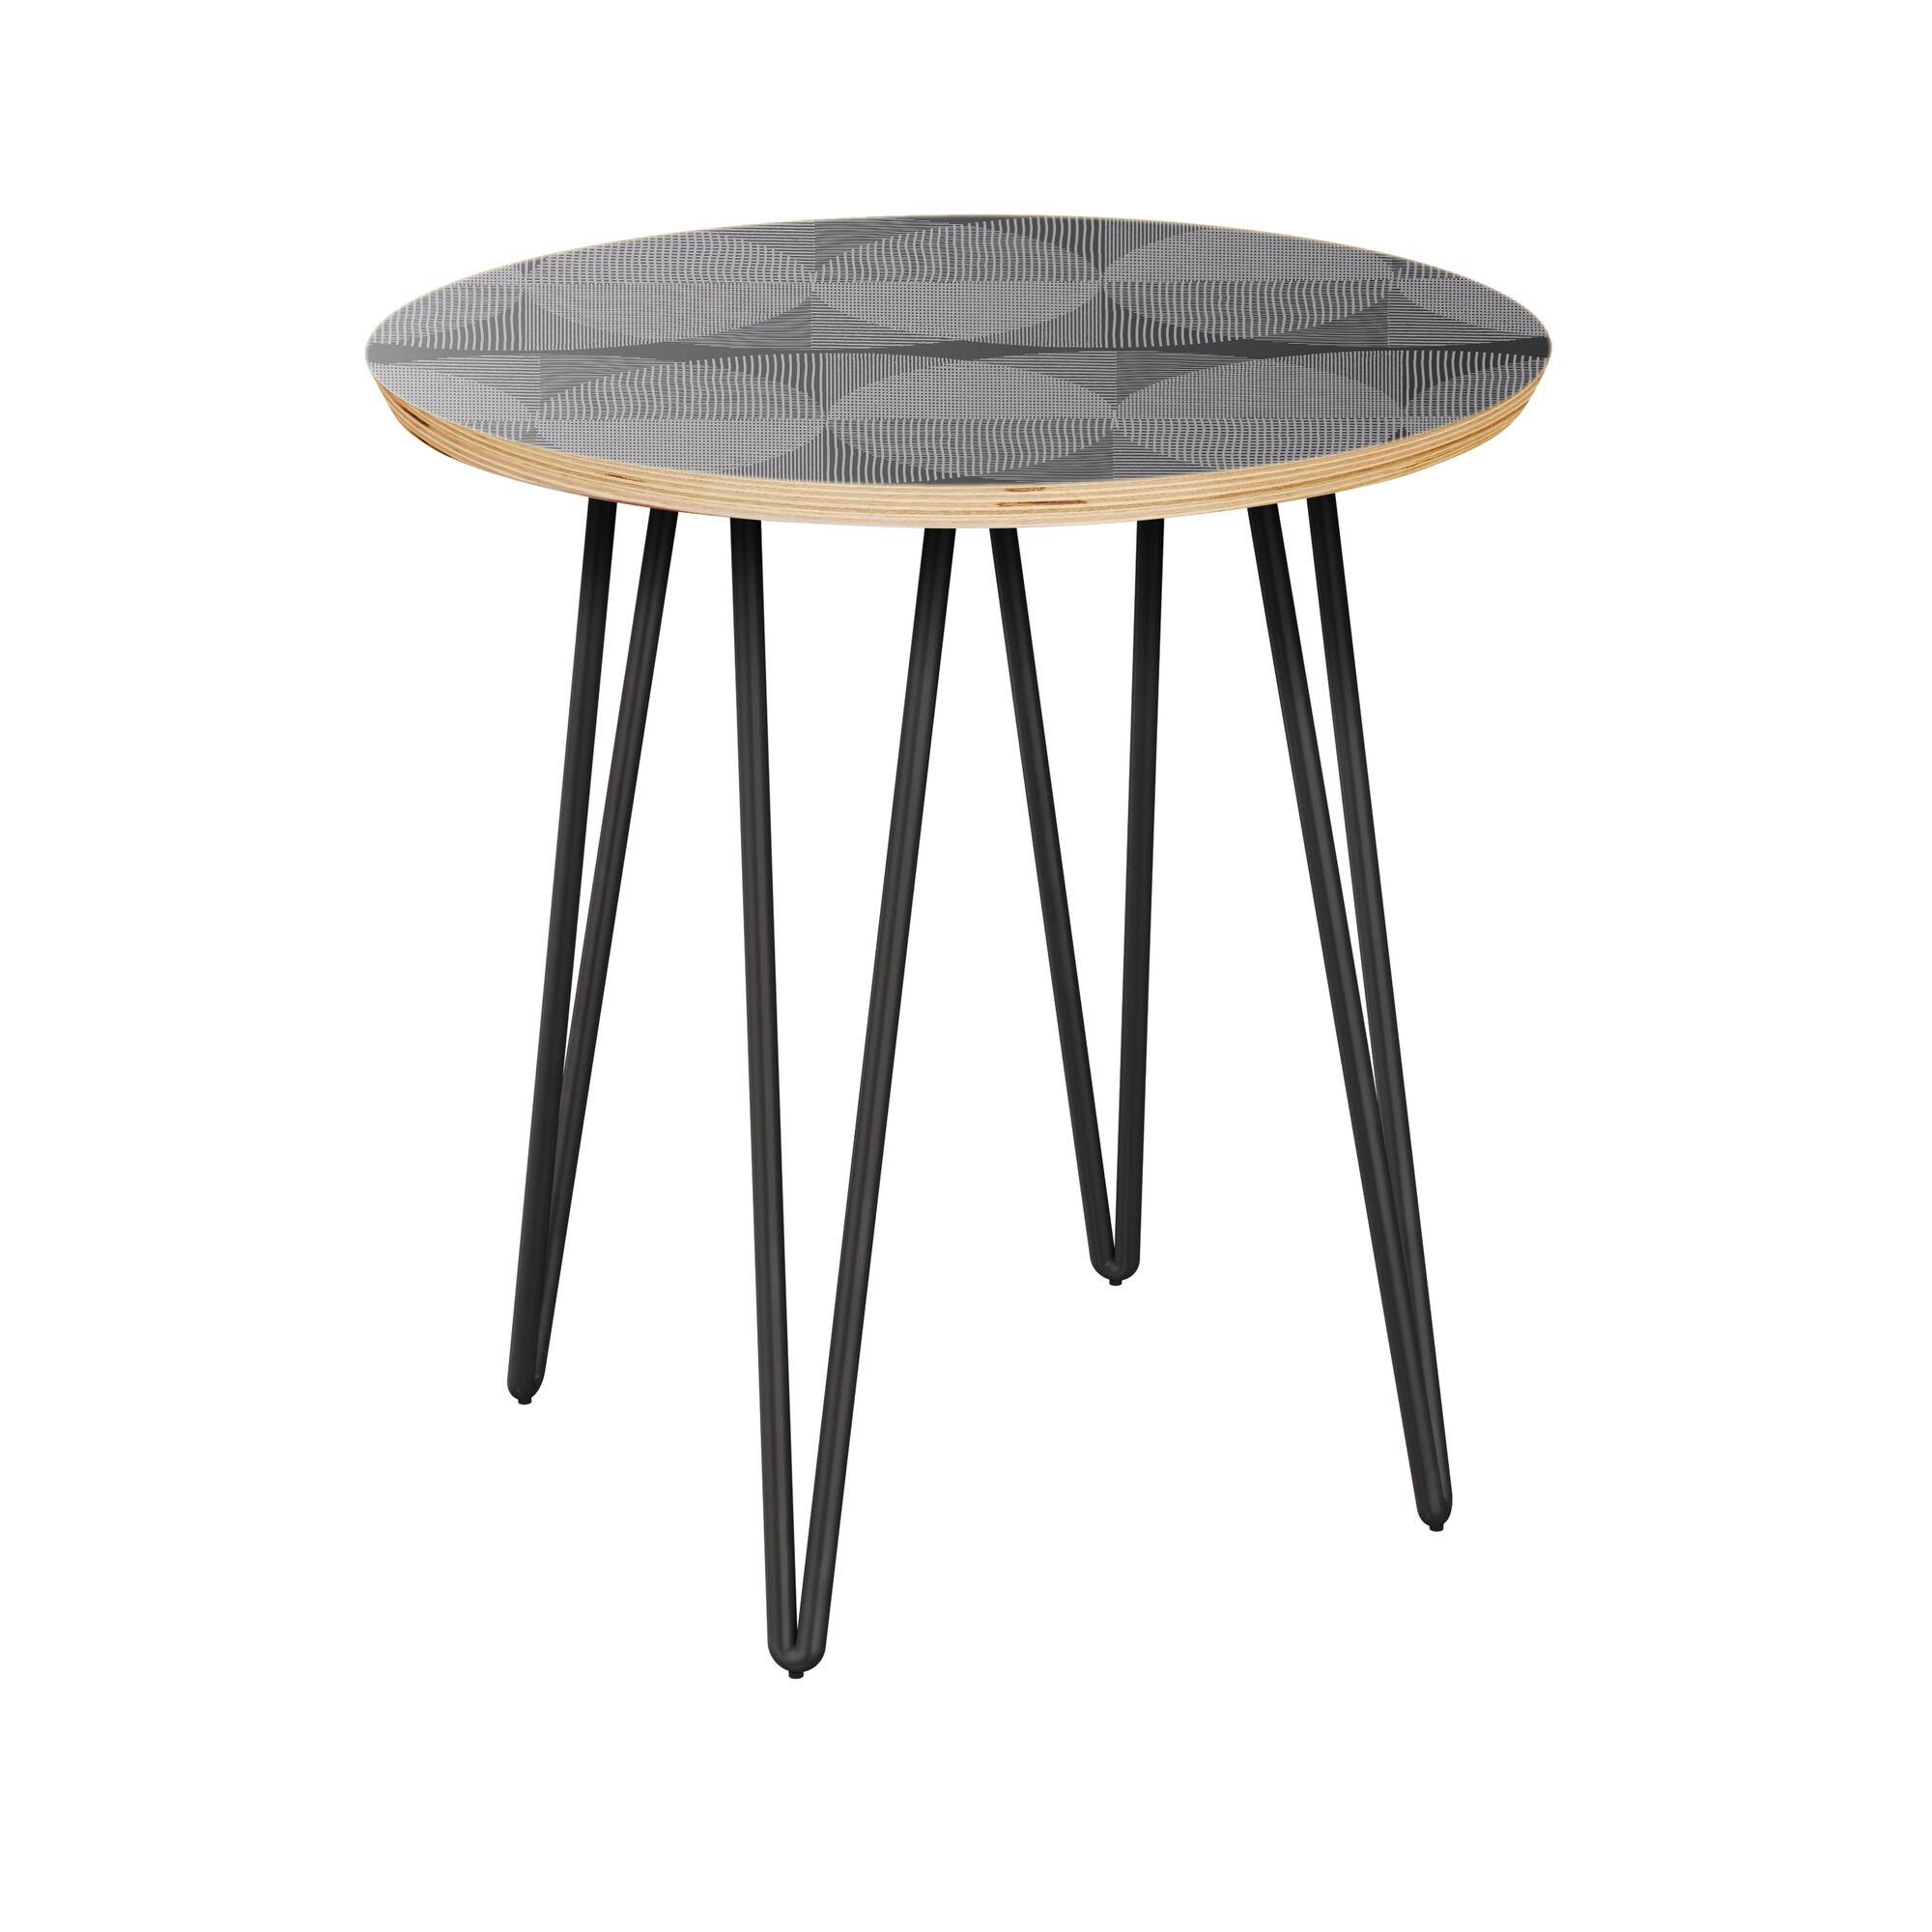 Eurich End Table Table Top Color: Natural, Table Base Color: Black